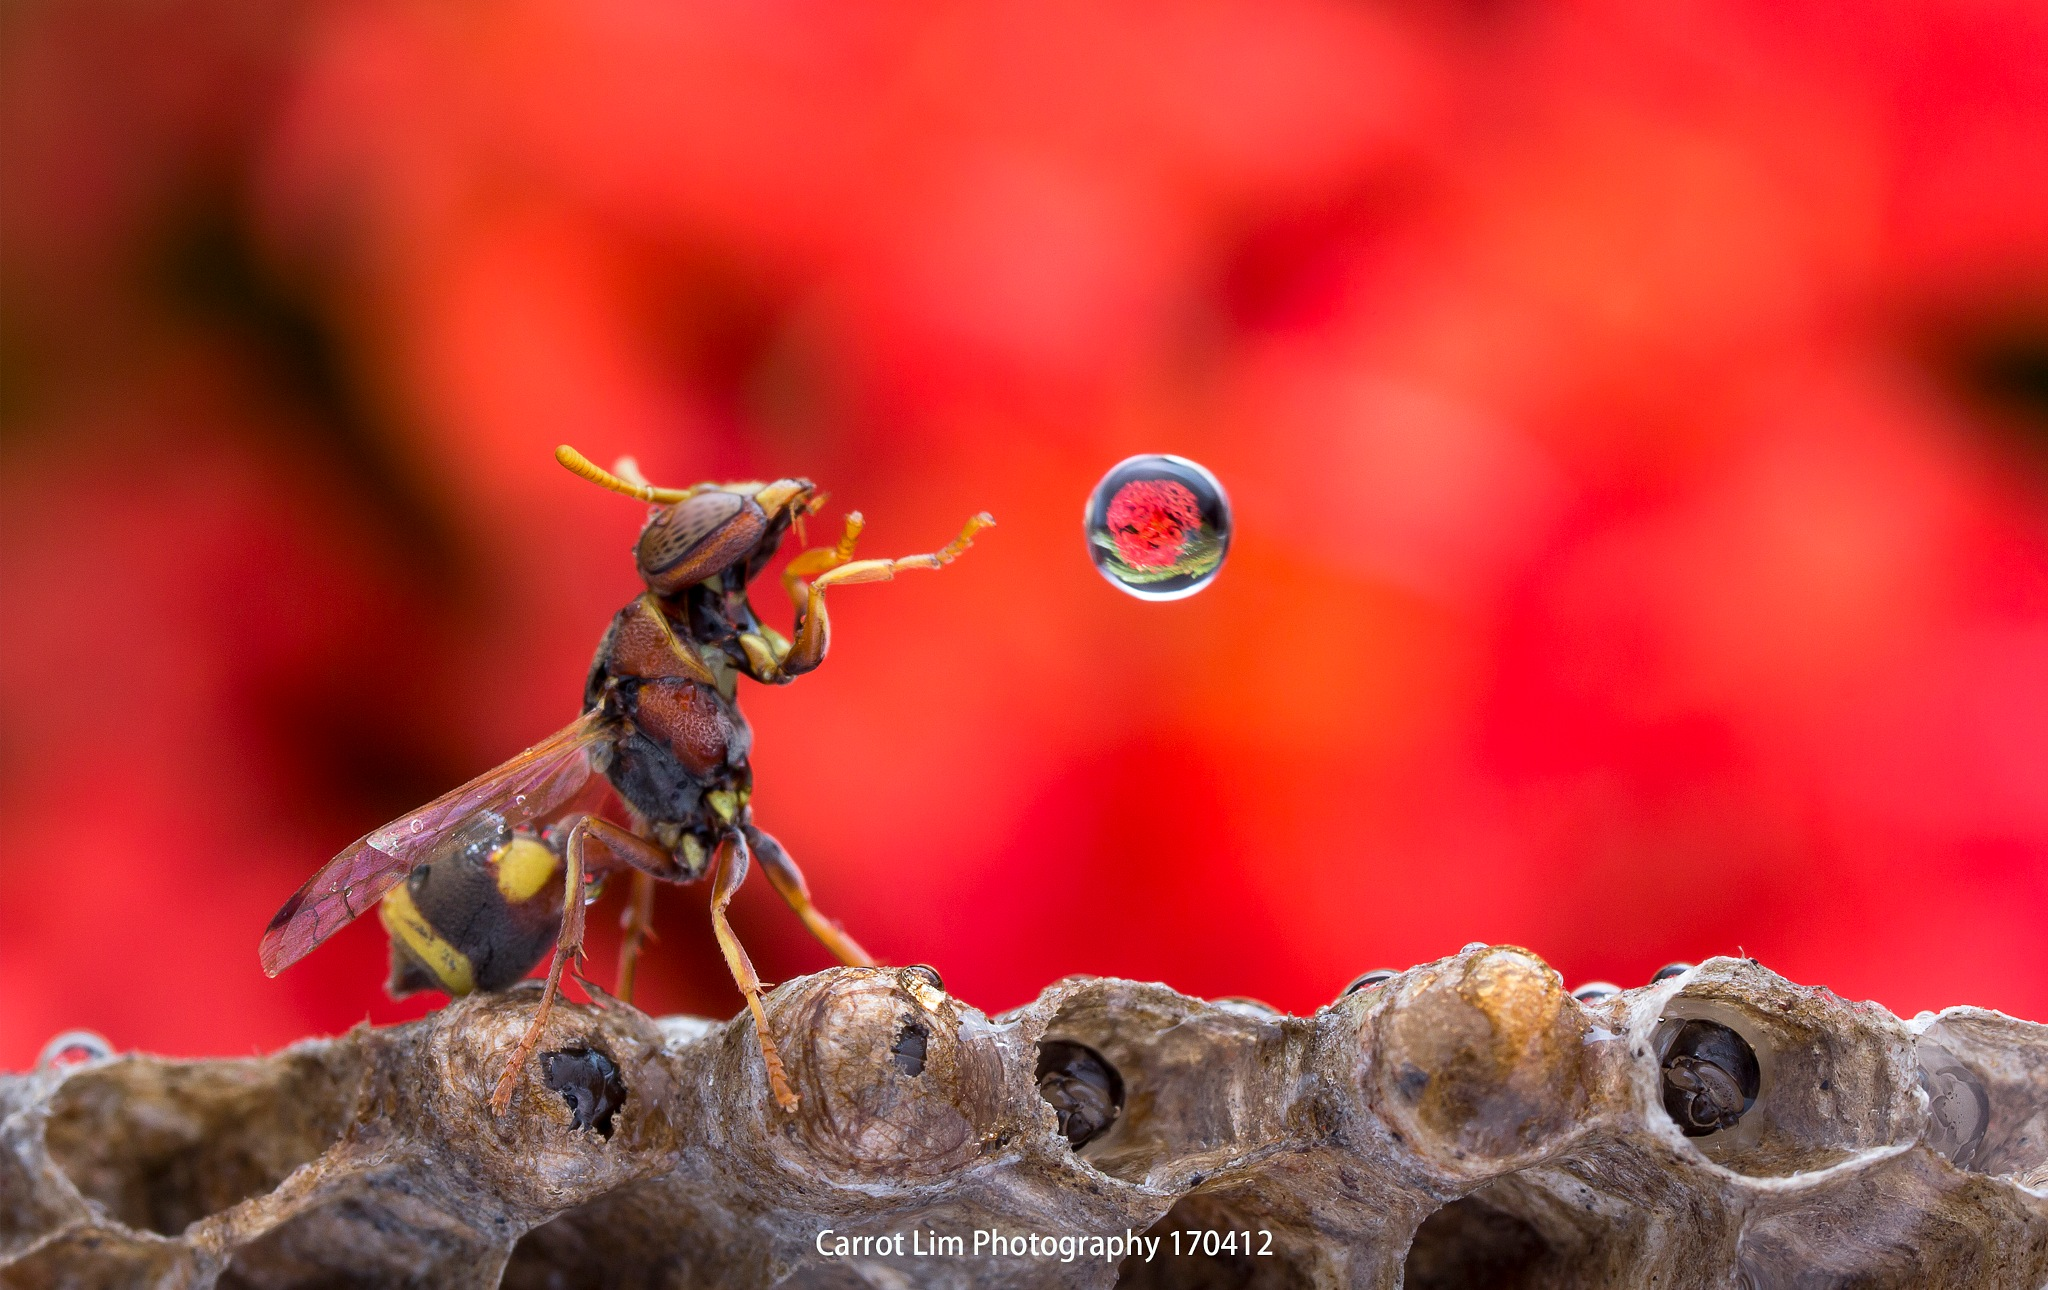 Wasp Blowing Water Bubble 170425A by carrot9817